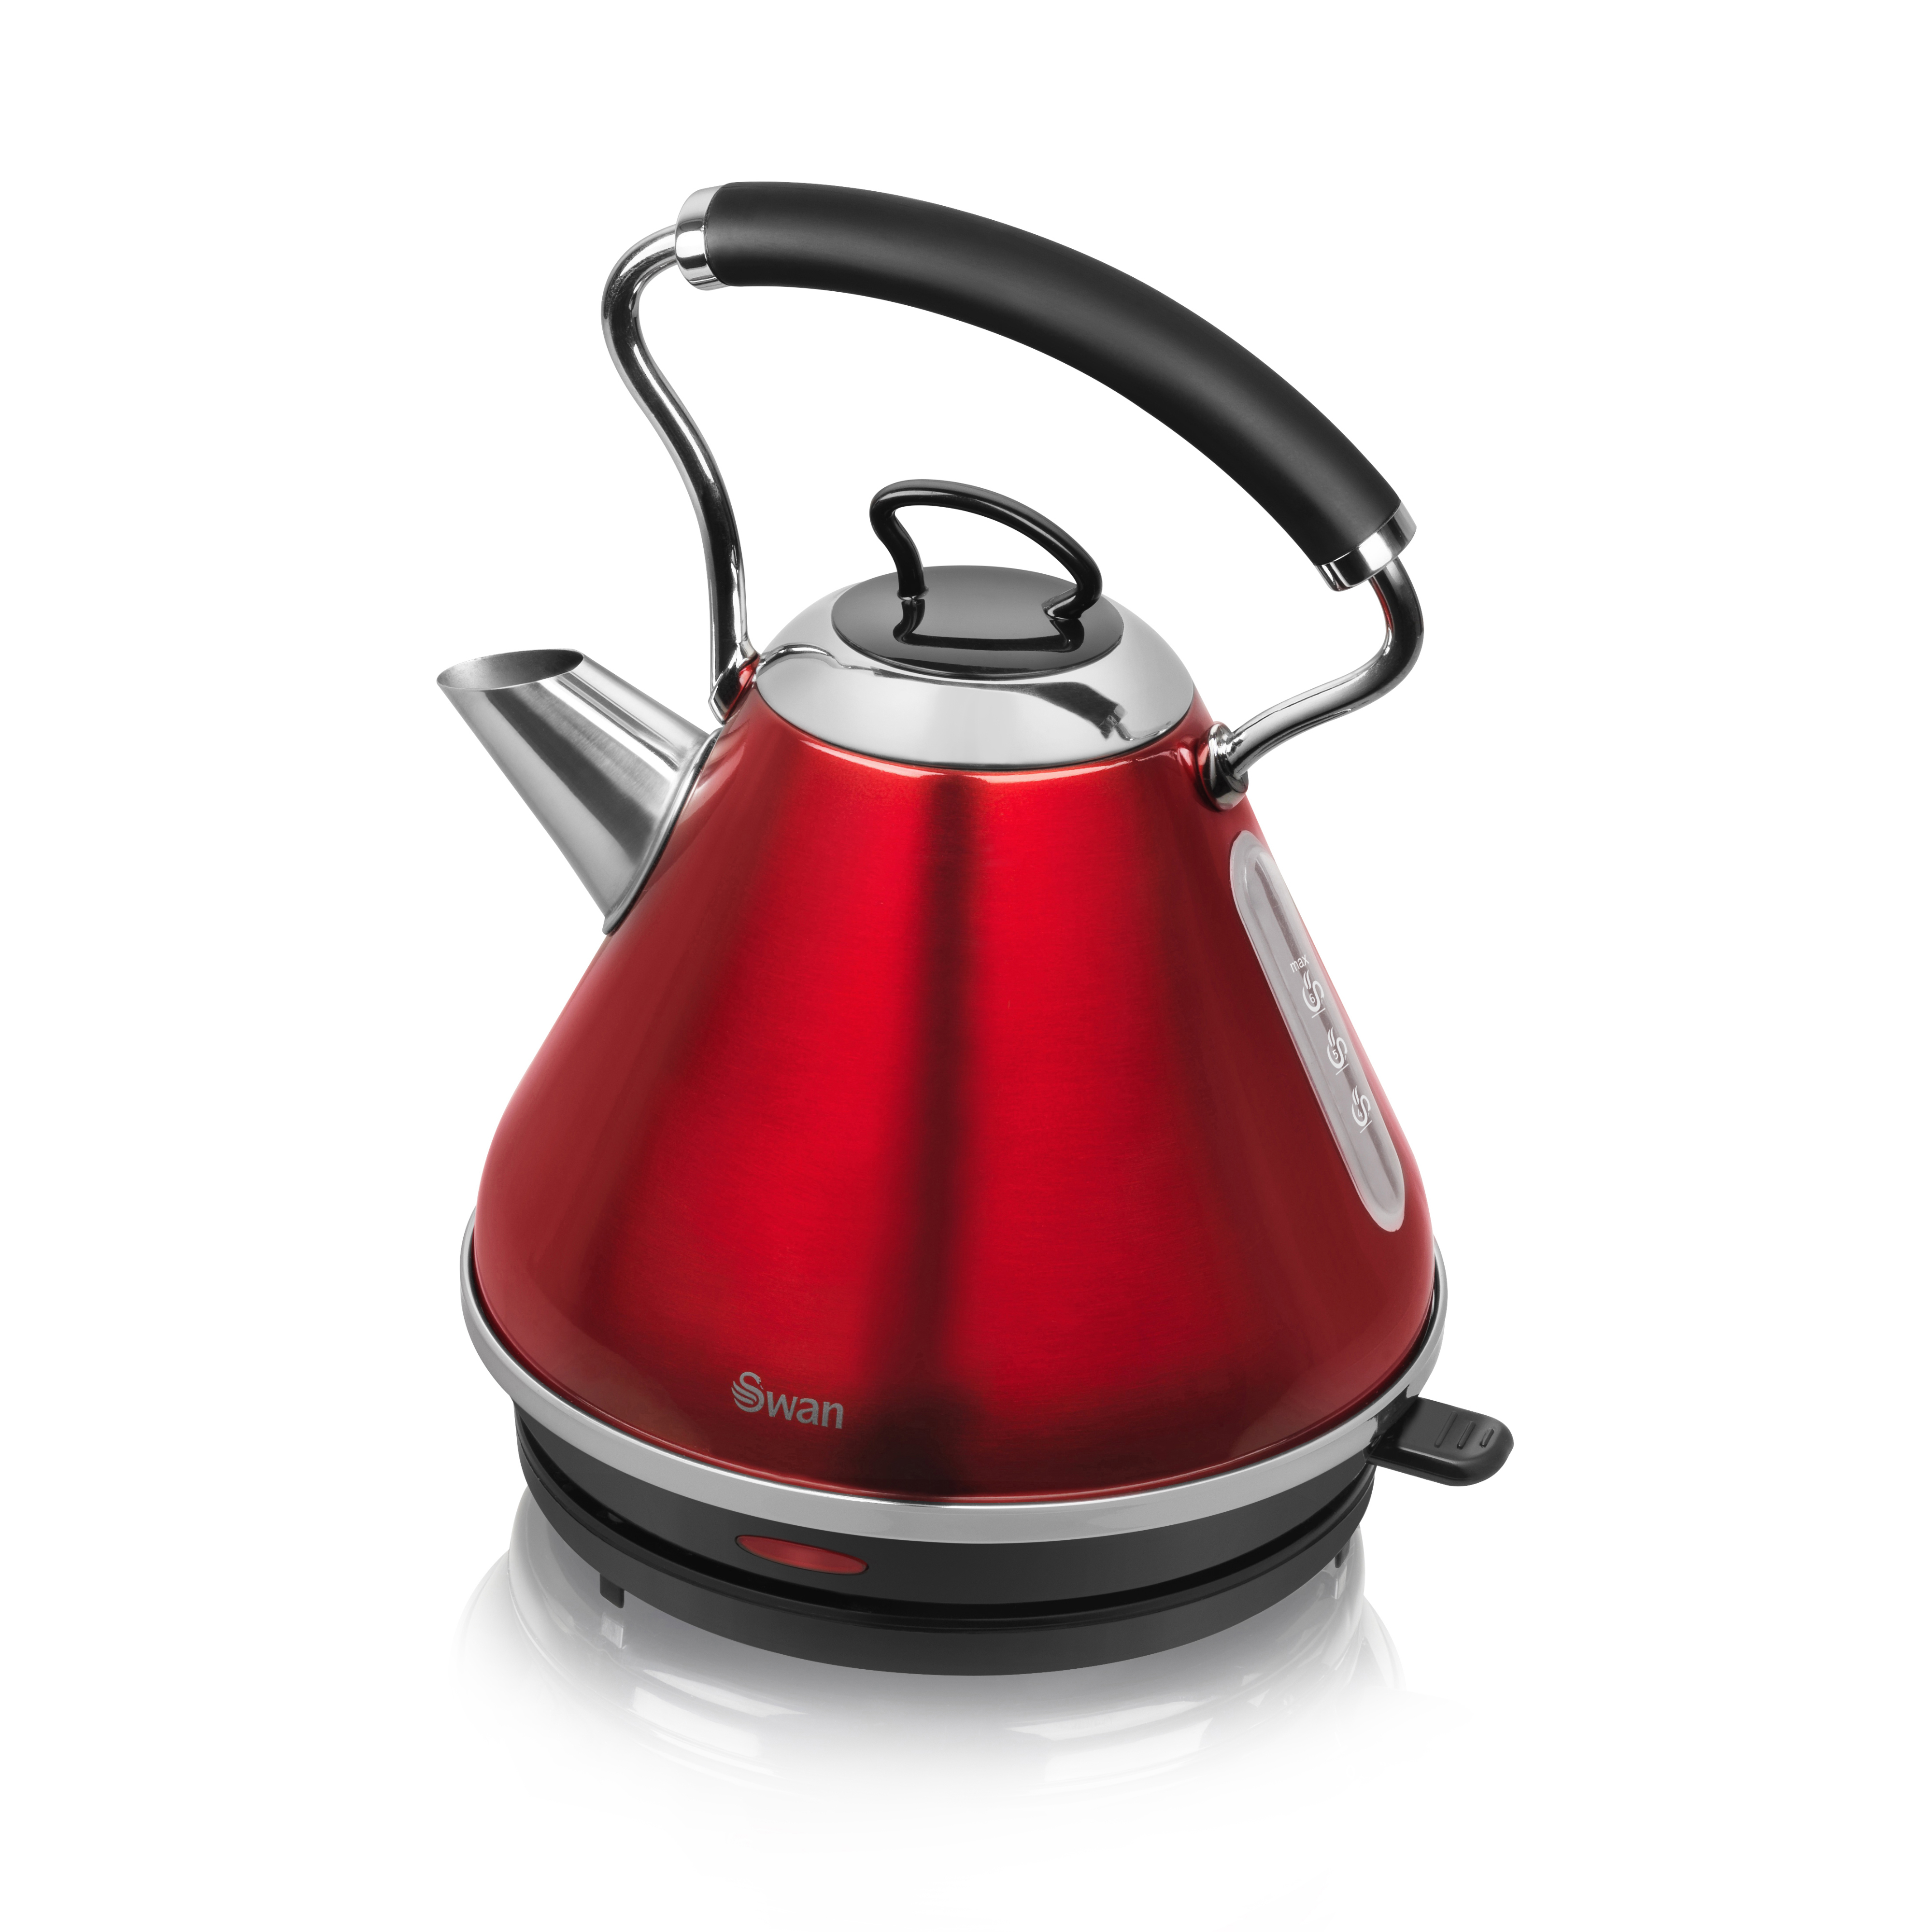 Swan 1.7 Litre Red Pyramid Kettle - Red No Colour